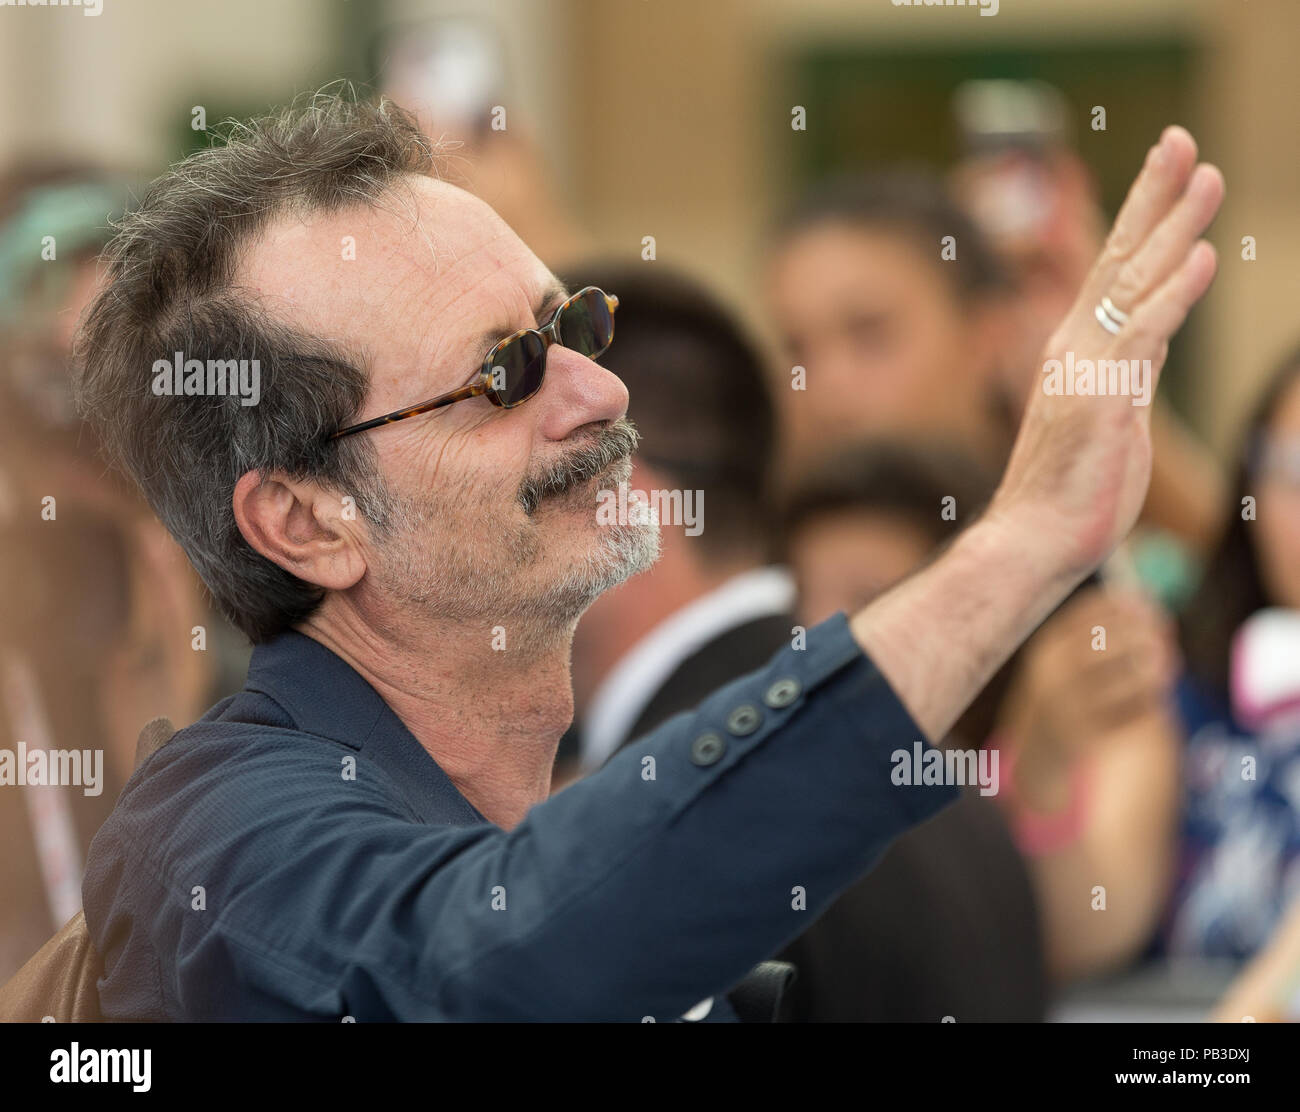 Italian actor stock photos italian actor stock images page 3 alamy salerno campania italy 26th july 2018 rocco papaleo italian actor m4hsunfo